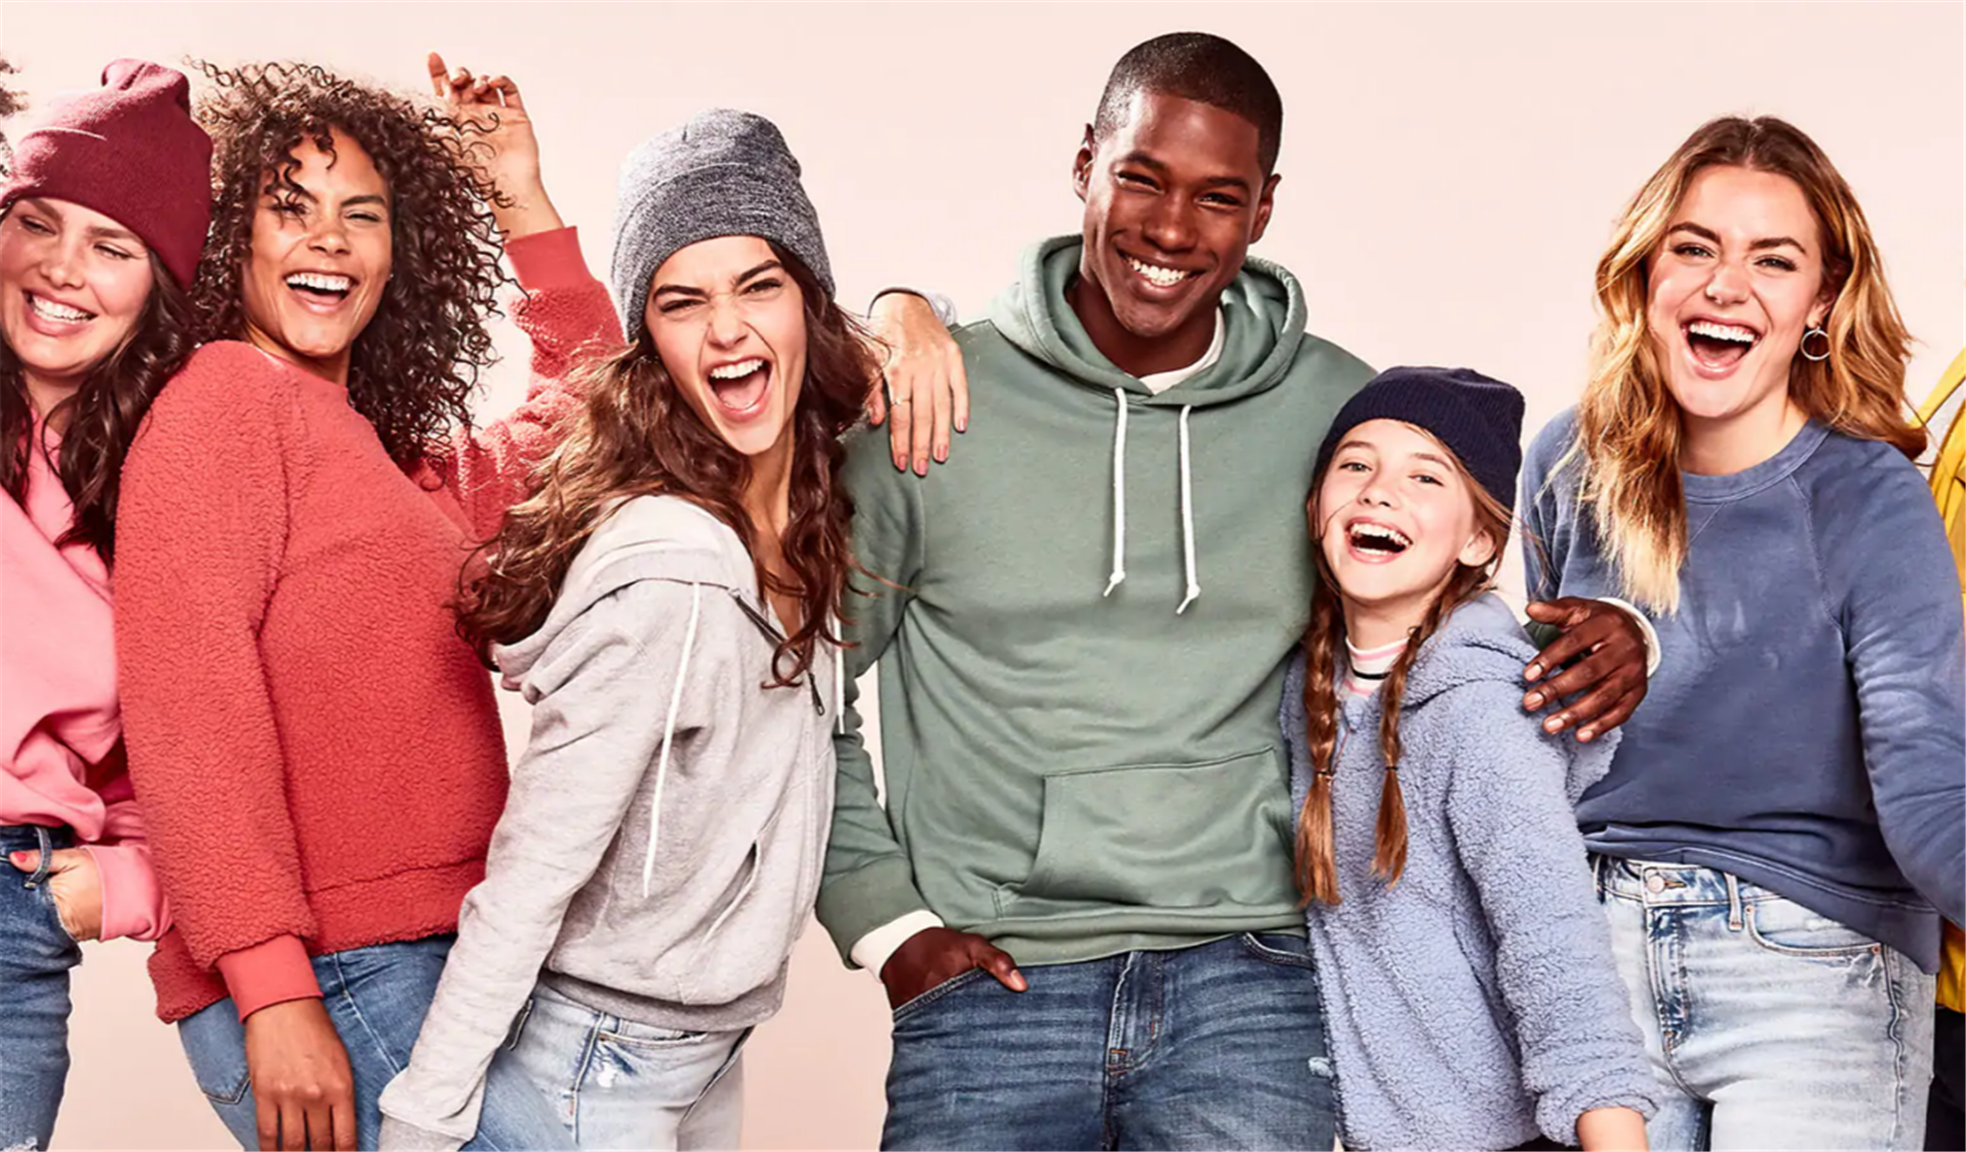 Old Navy – Up to 80% Off Apparel + Free Store Pickup! Makes Great Valentine's Day Gifts!